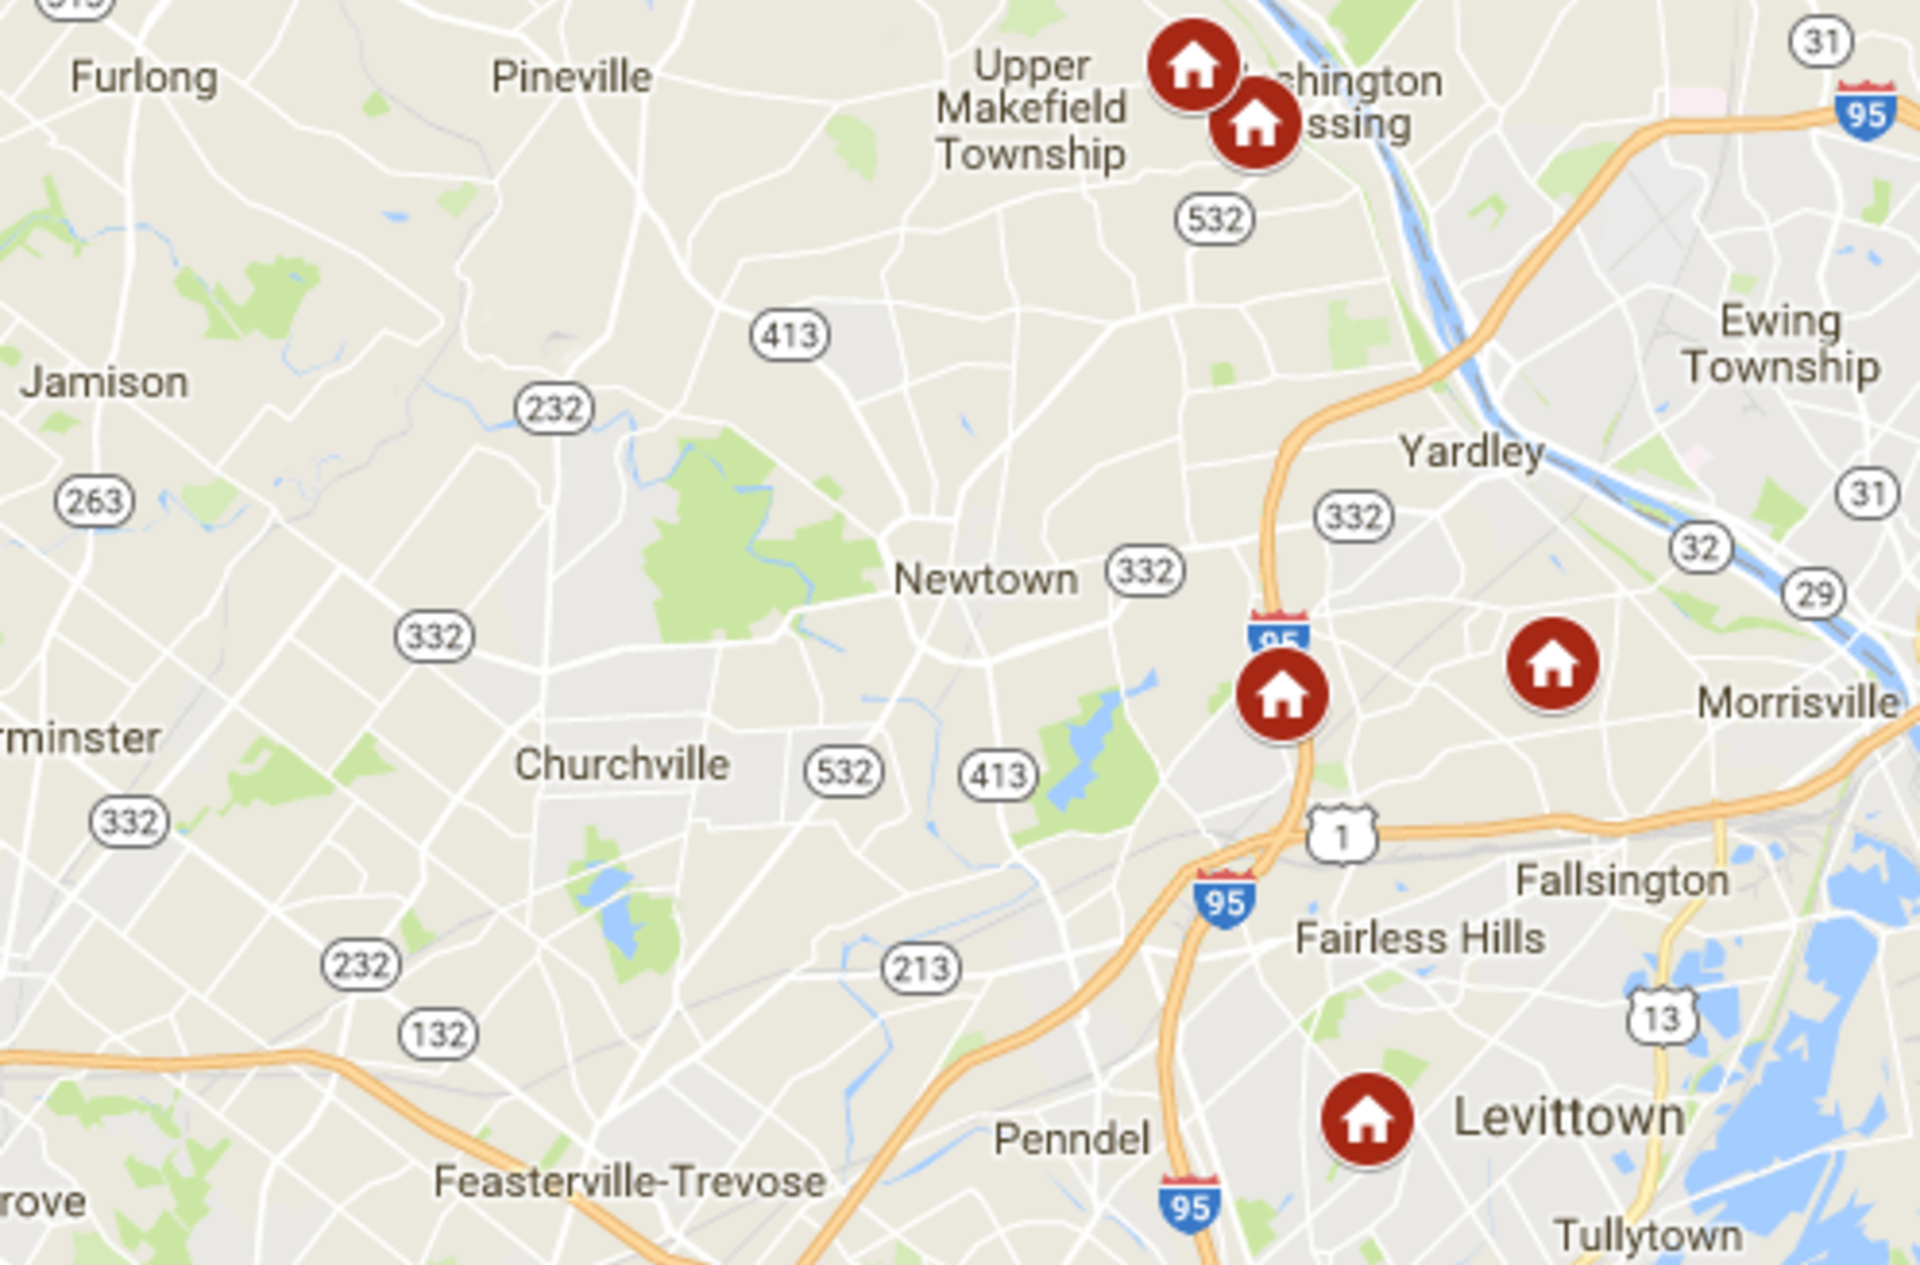 Keller Williams Newtown's open houses January 6th – January 7th